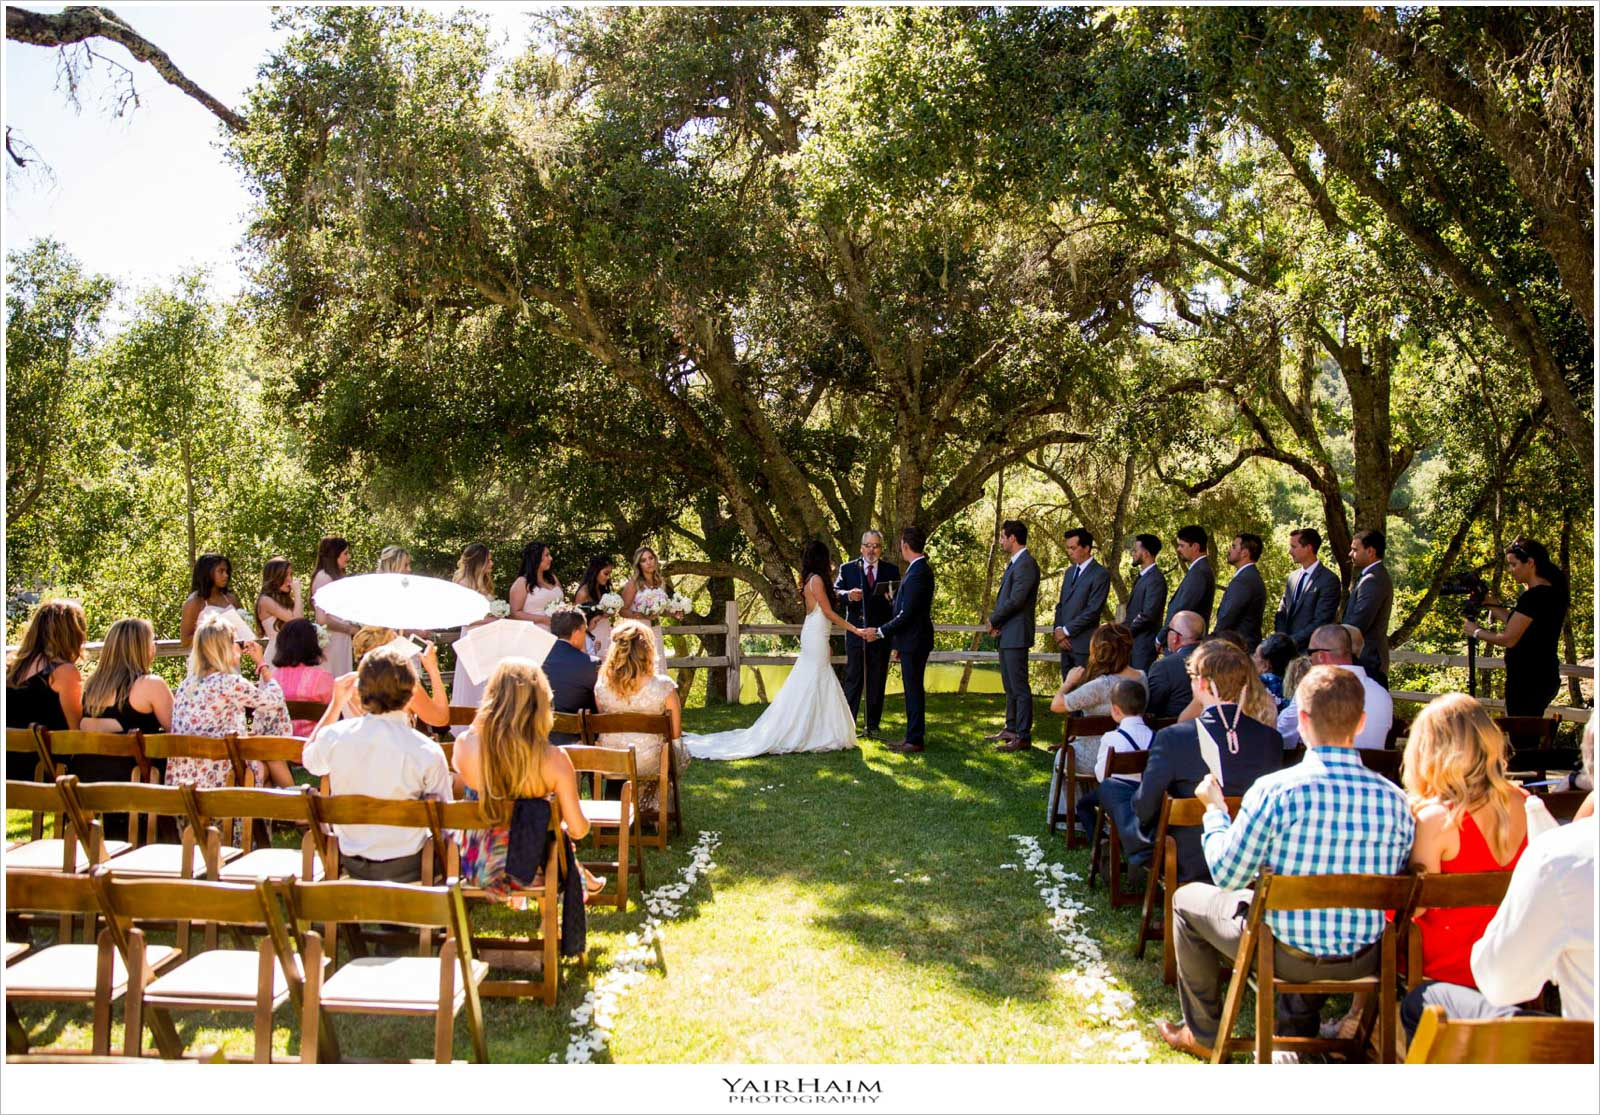 Destination-wedding-photographer-Yair-Haim-18